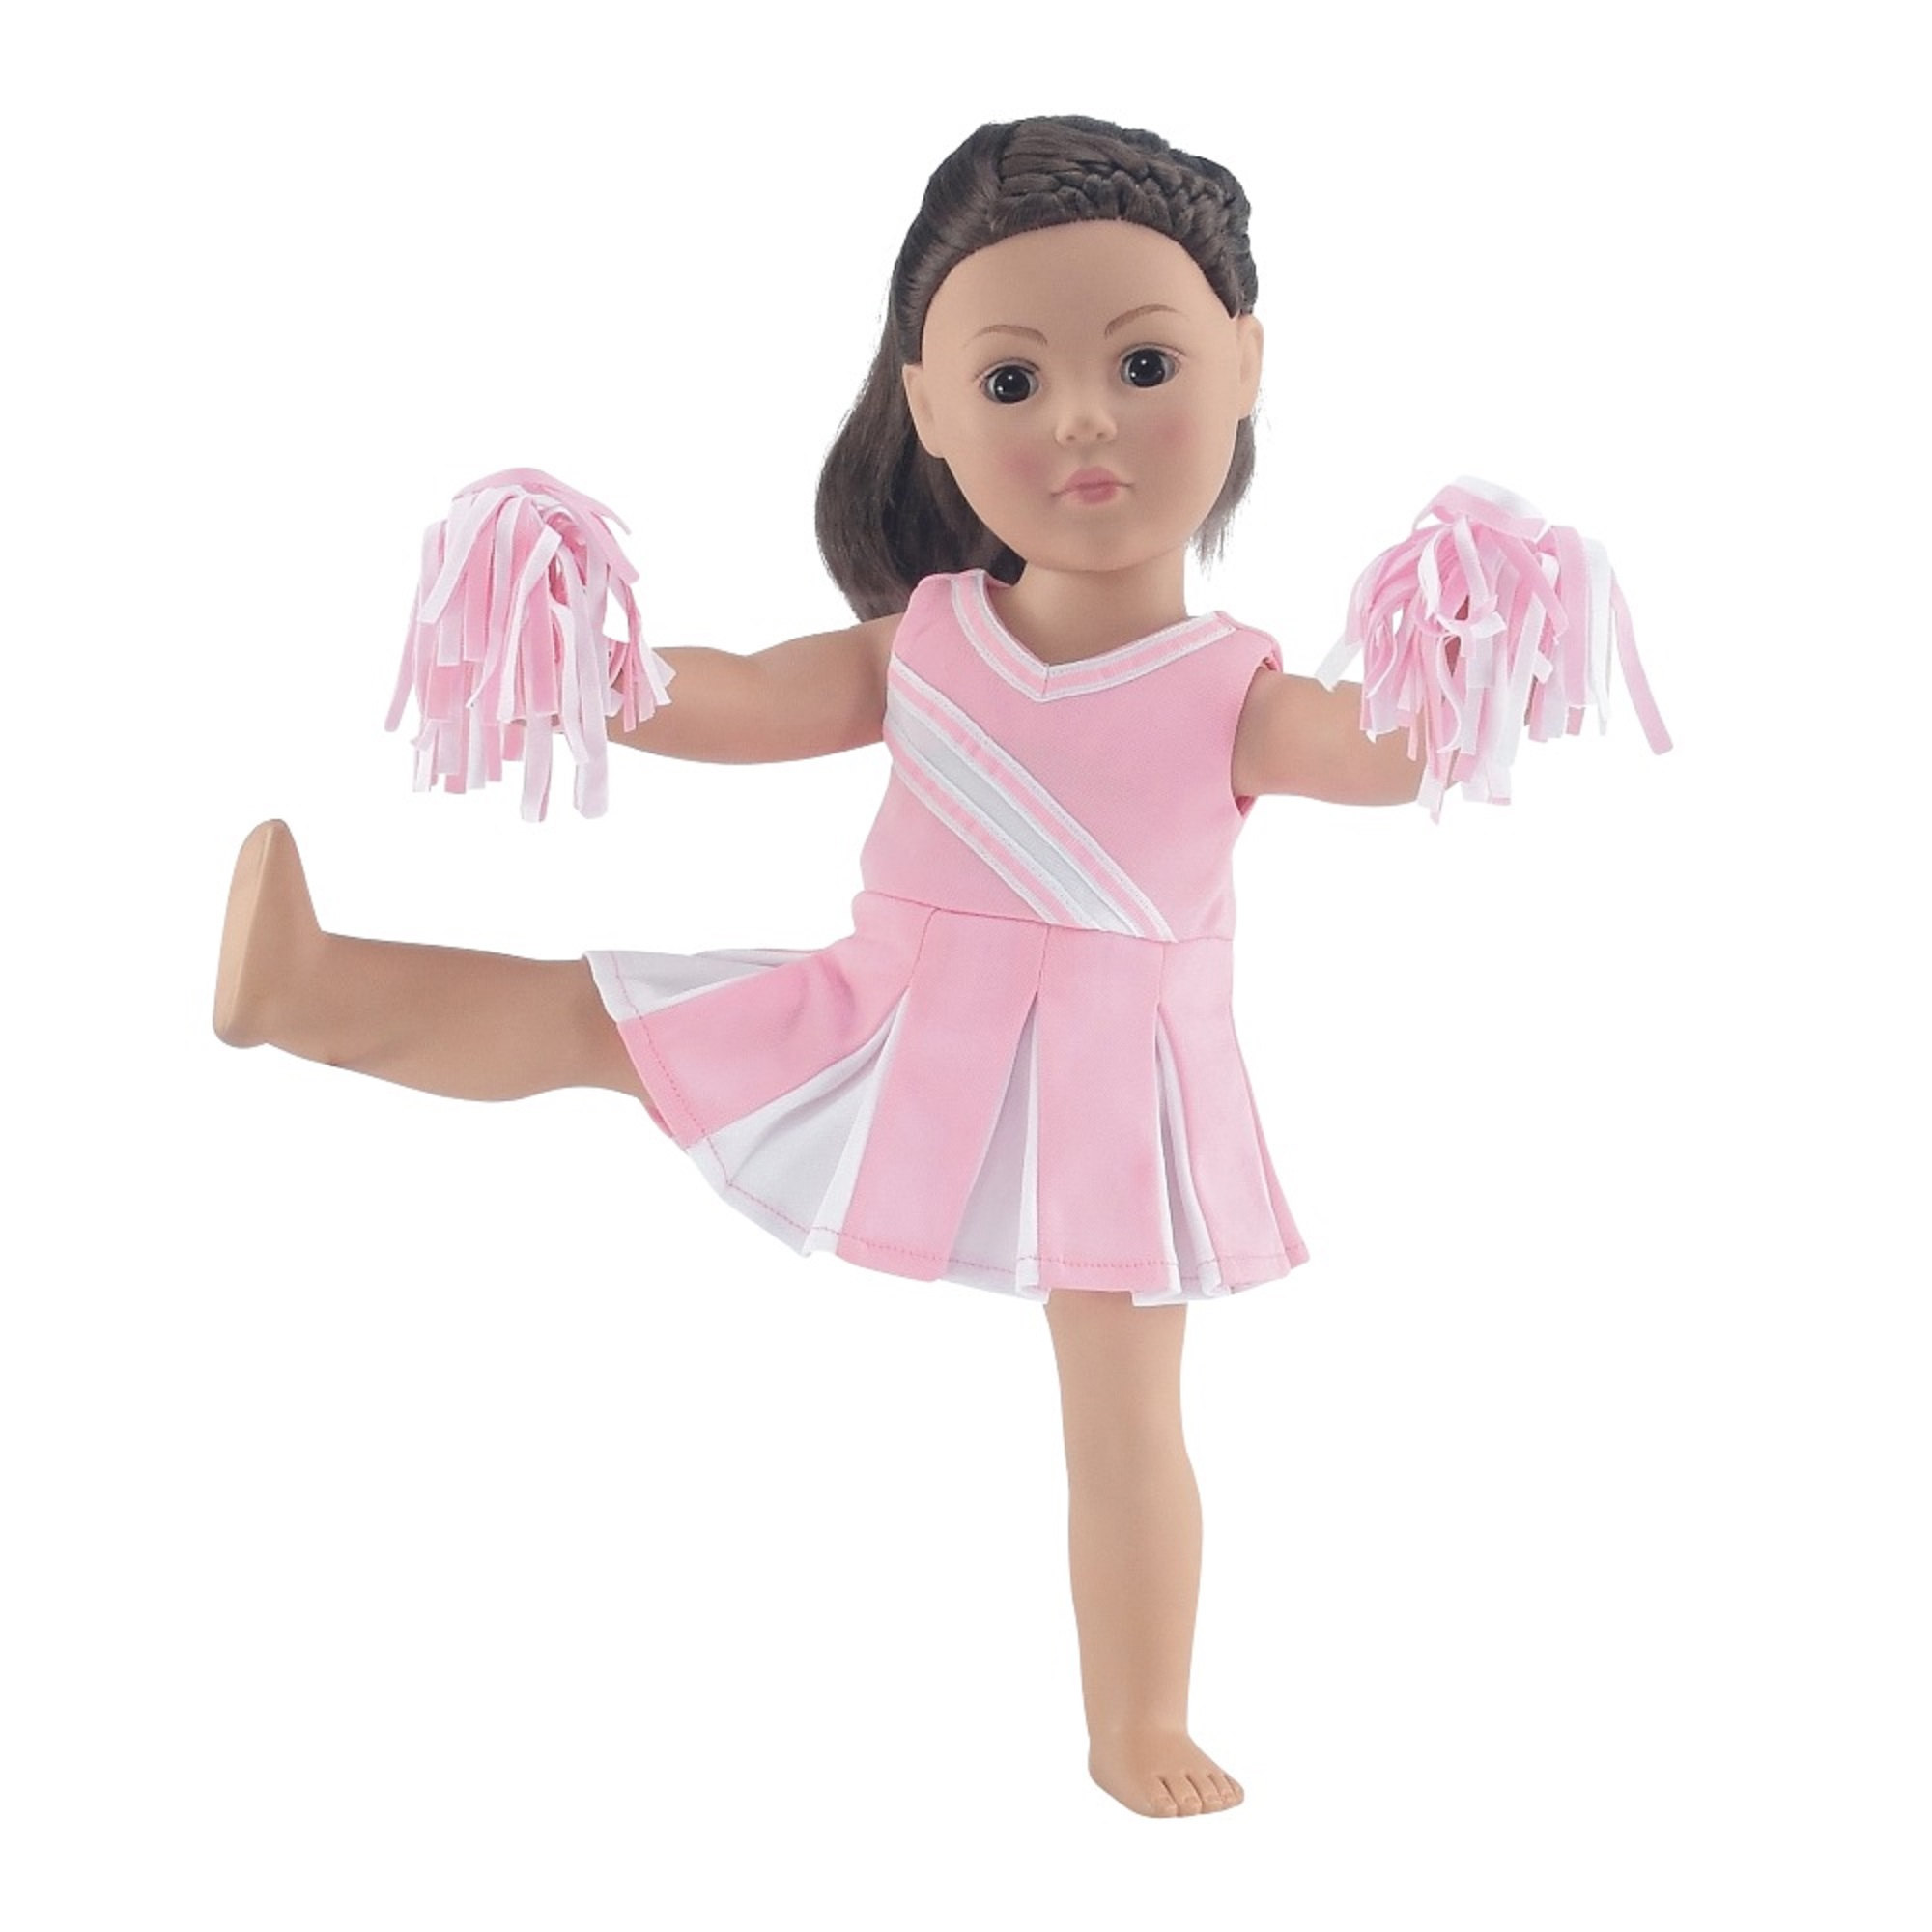 94974e6b17a 18 Inch Doll Pink Cheerleader Outfit | Clothes Fit 18